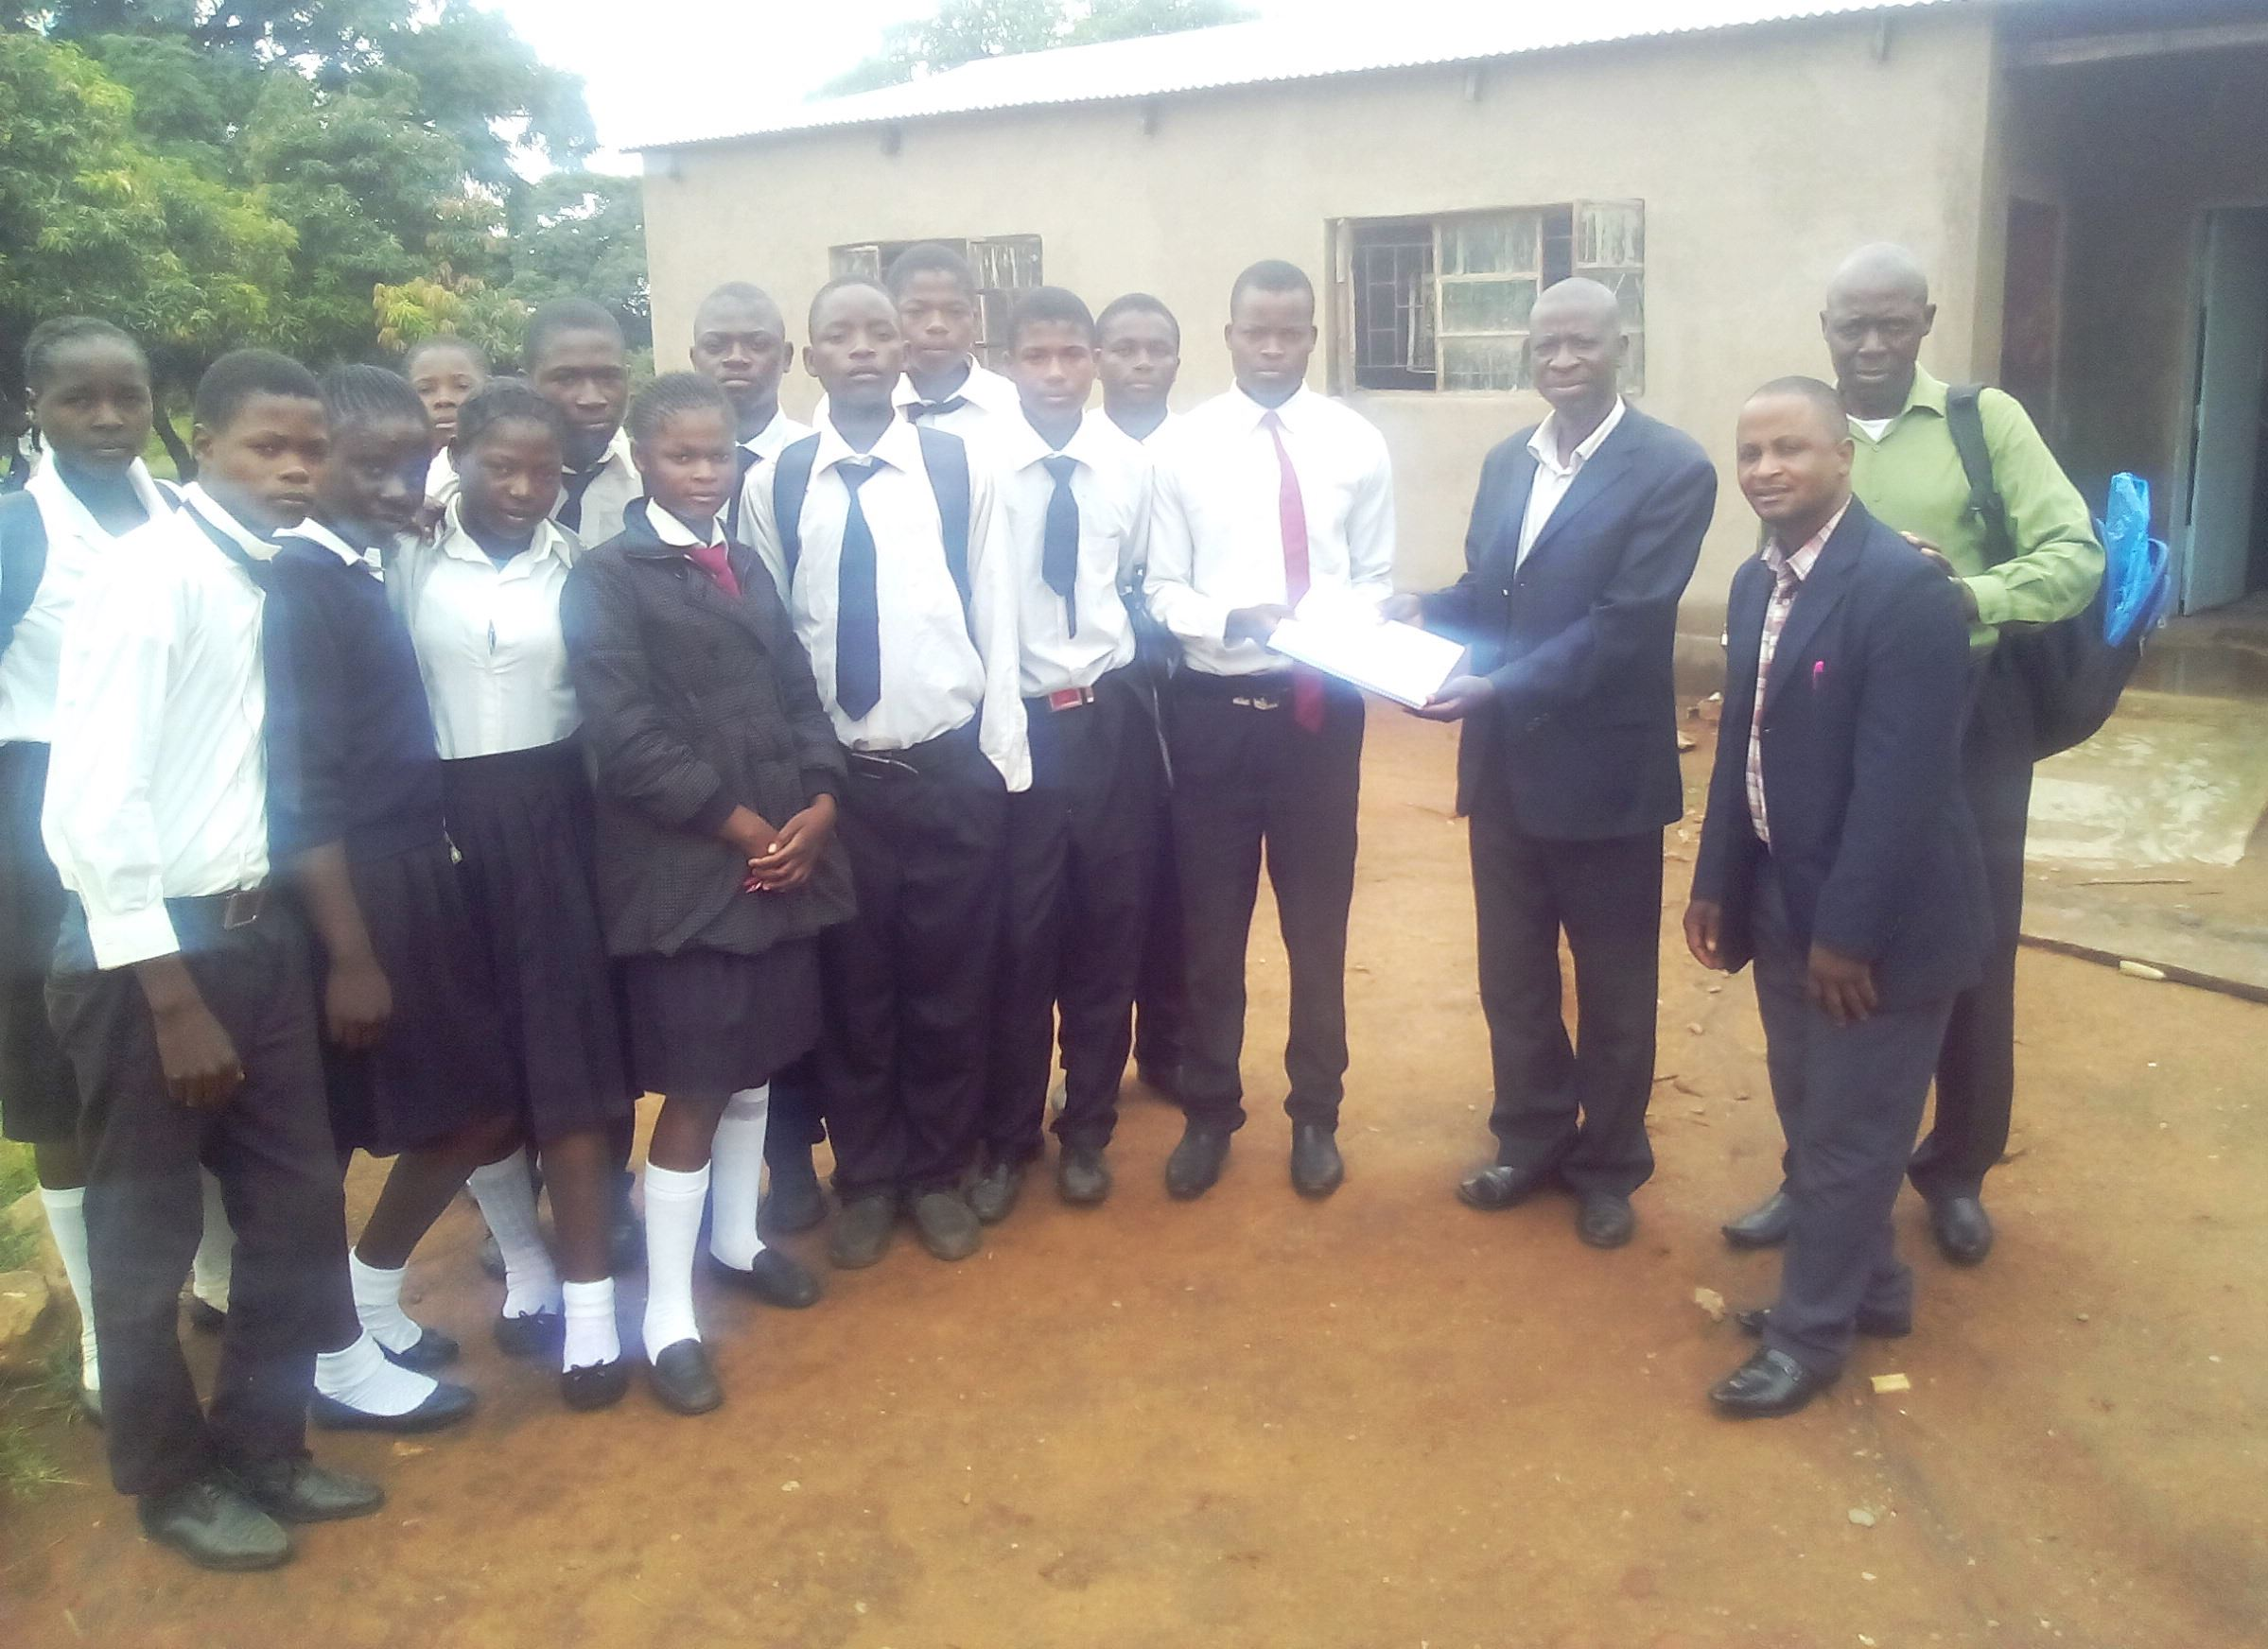 20190310 Kasonde School students